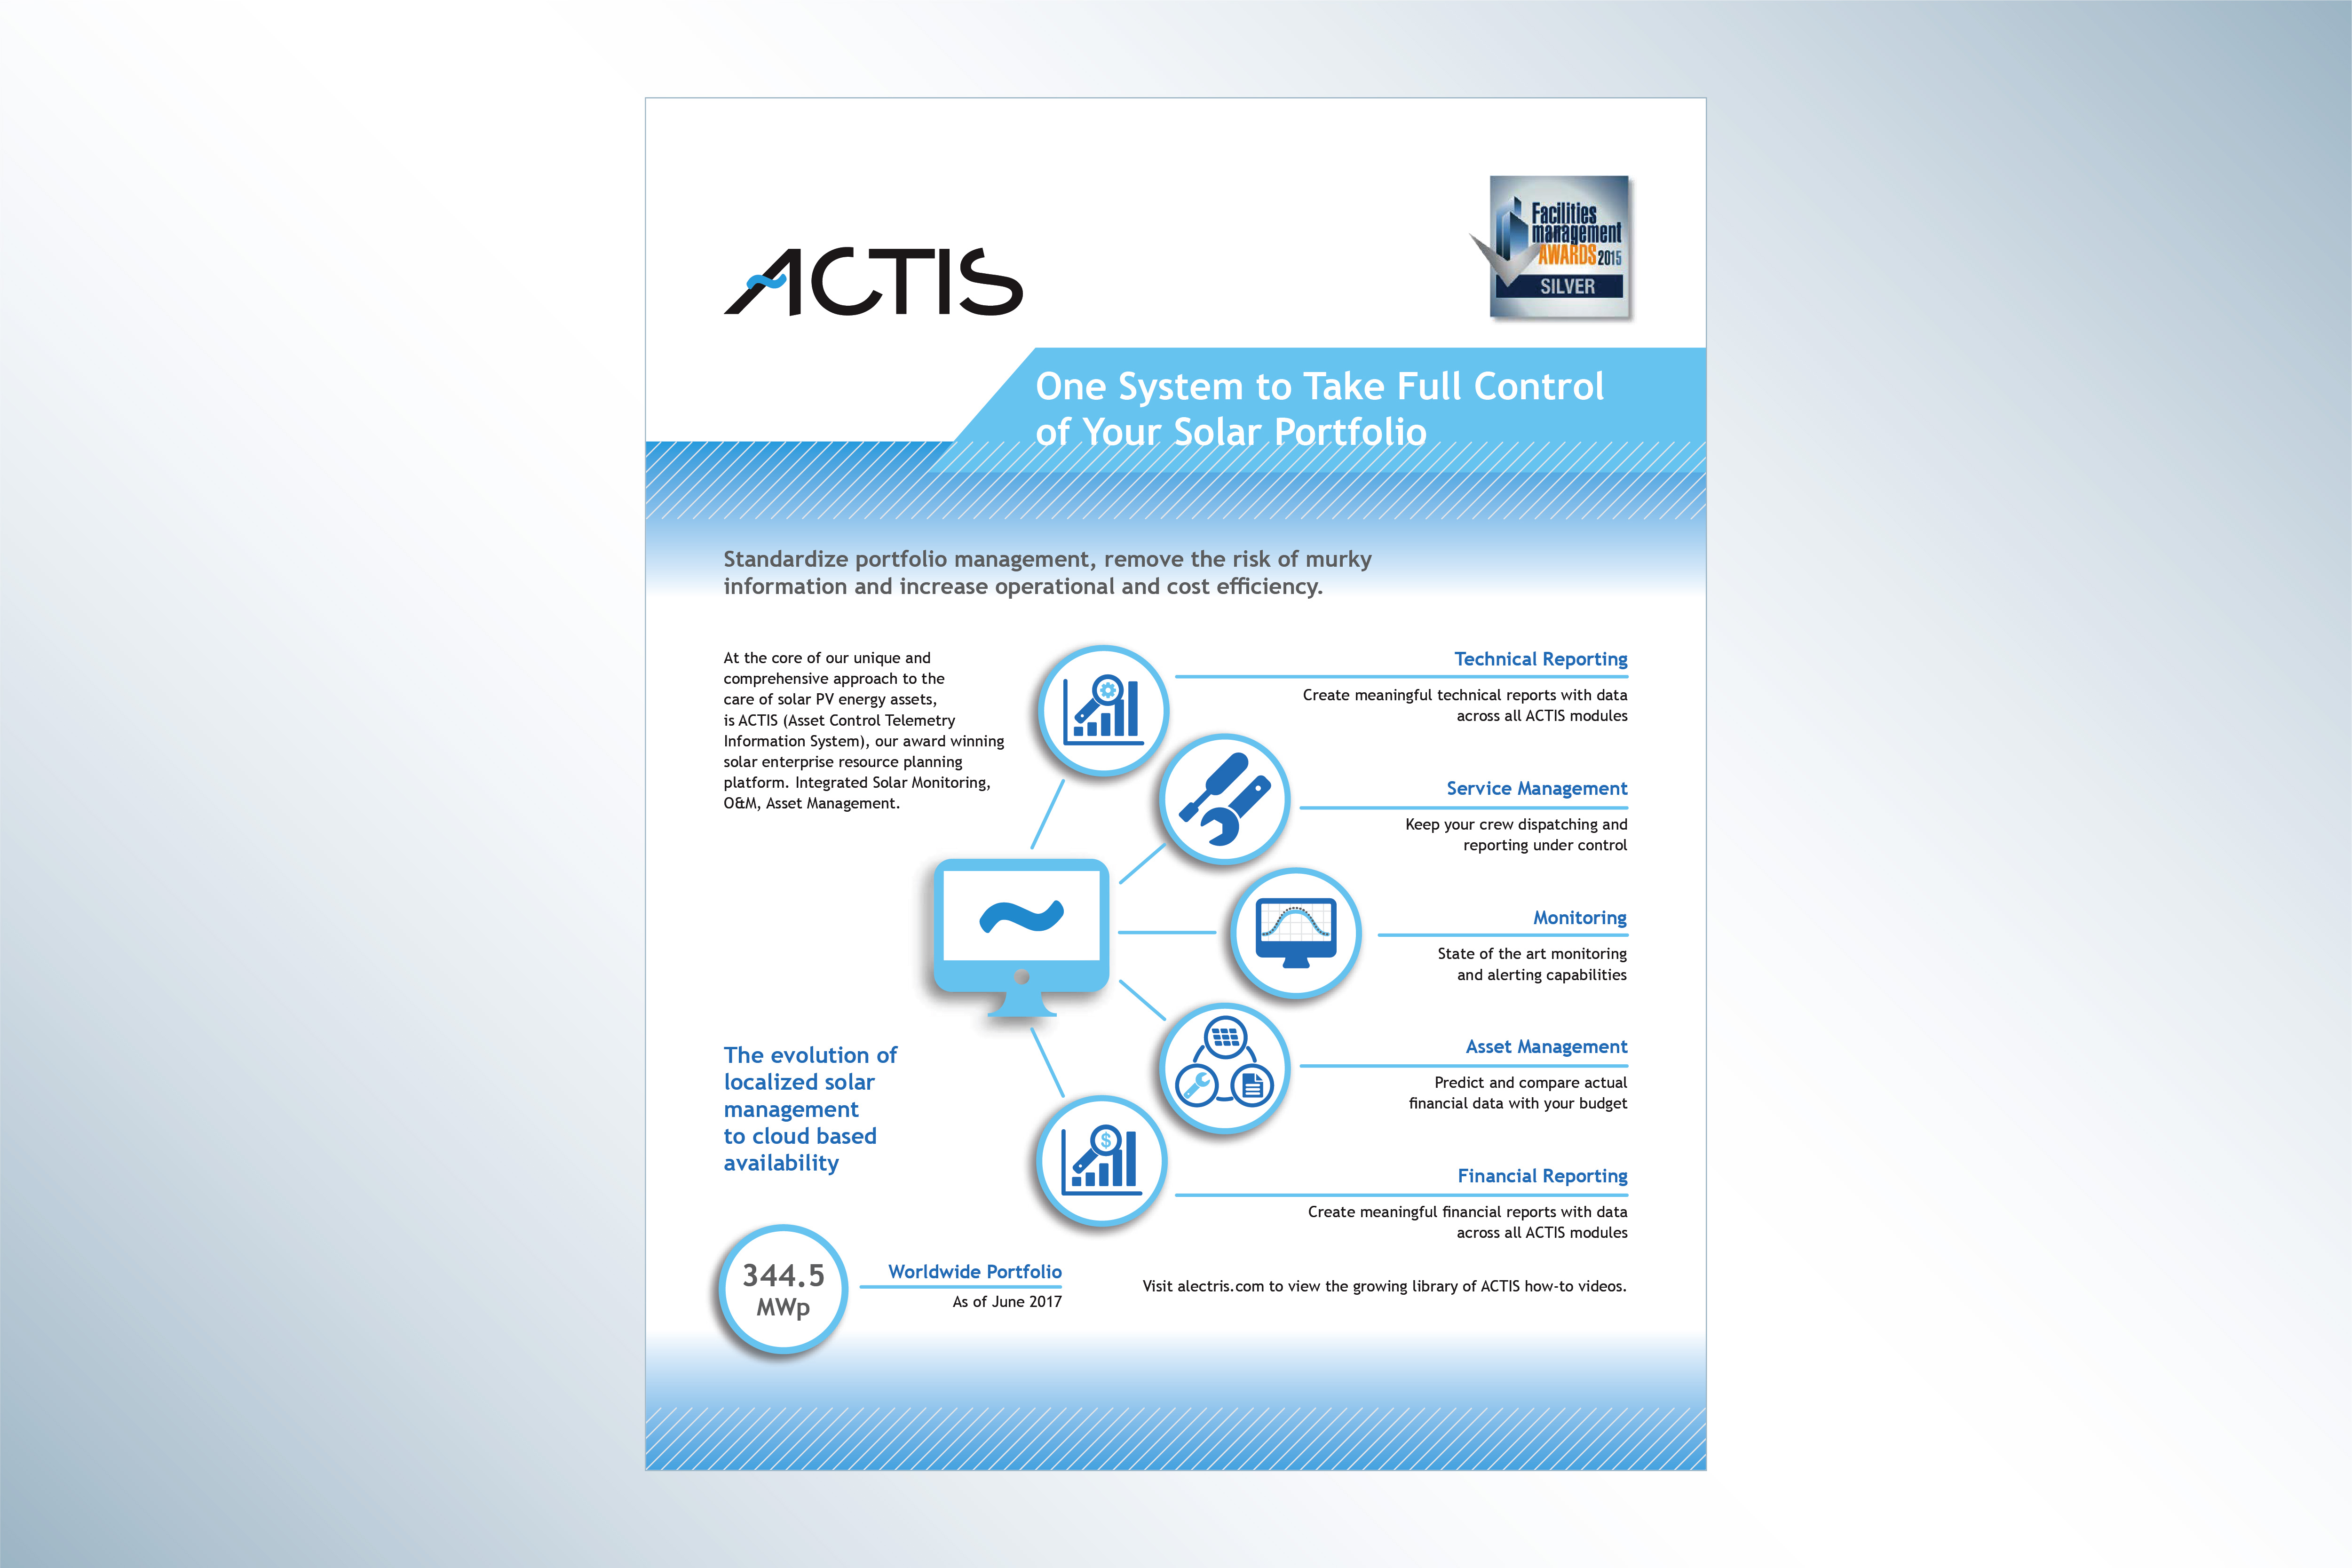 Actis Collateral 02 image